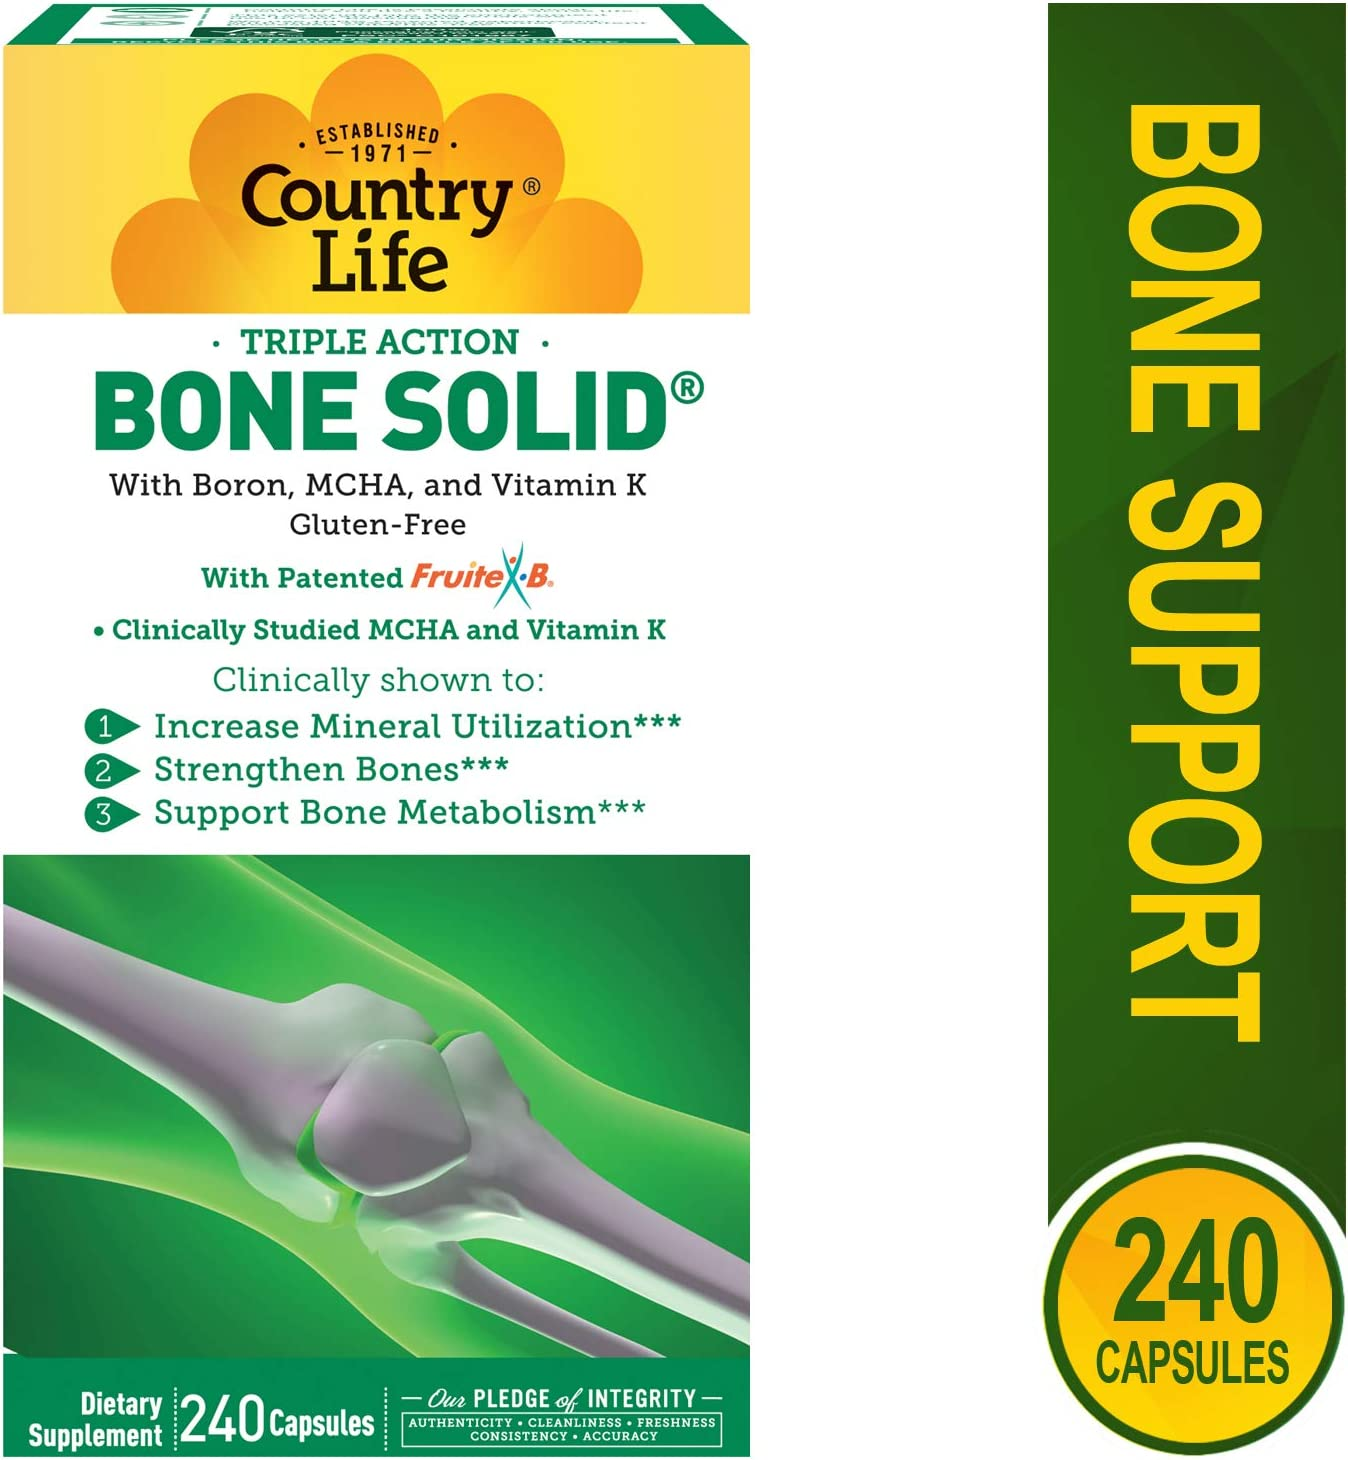 Country Life Triple Action Bone Solid – 240 Capsules – Increase Mineral Utilization – Strengthen Bones – Bone Metabolism